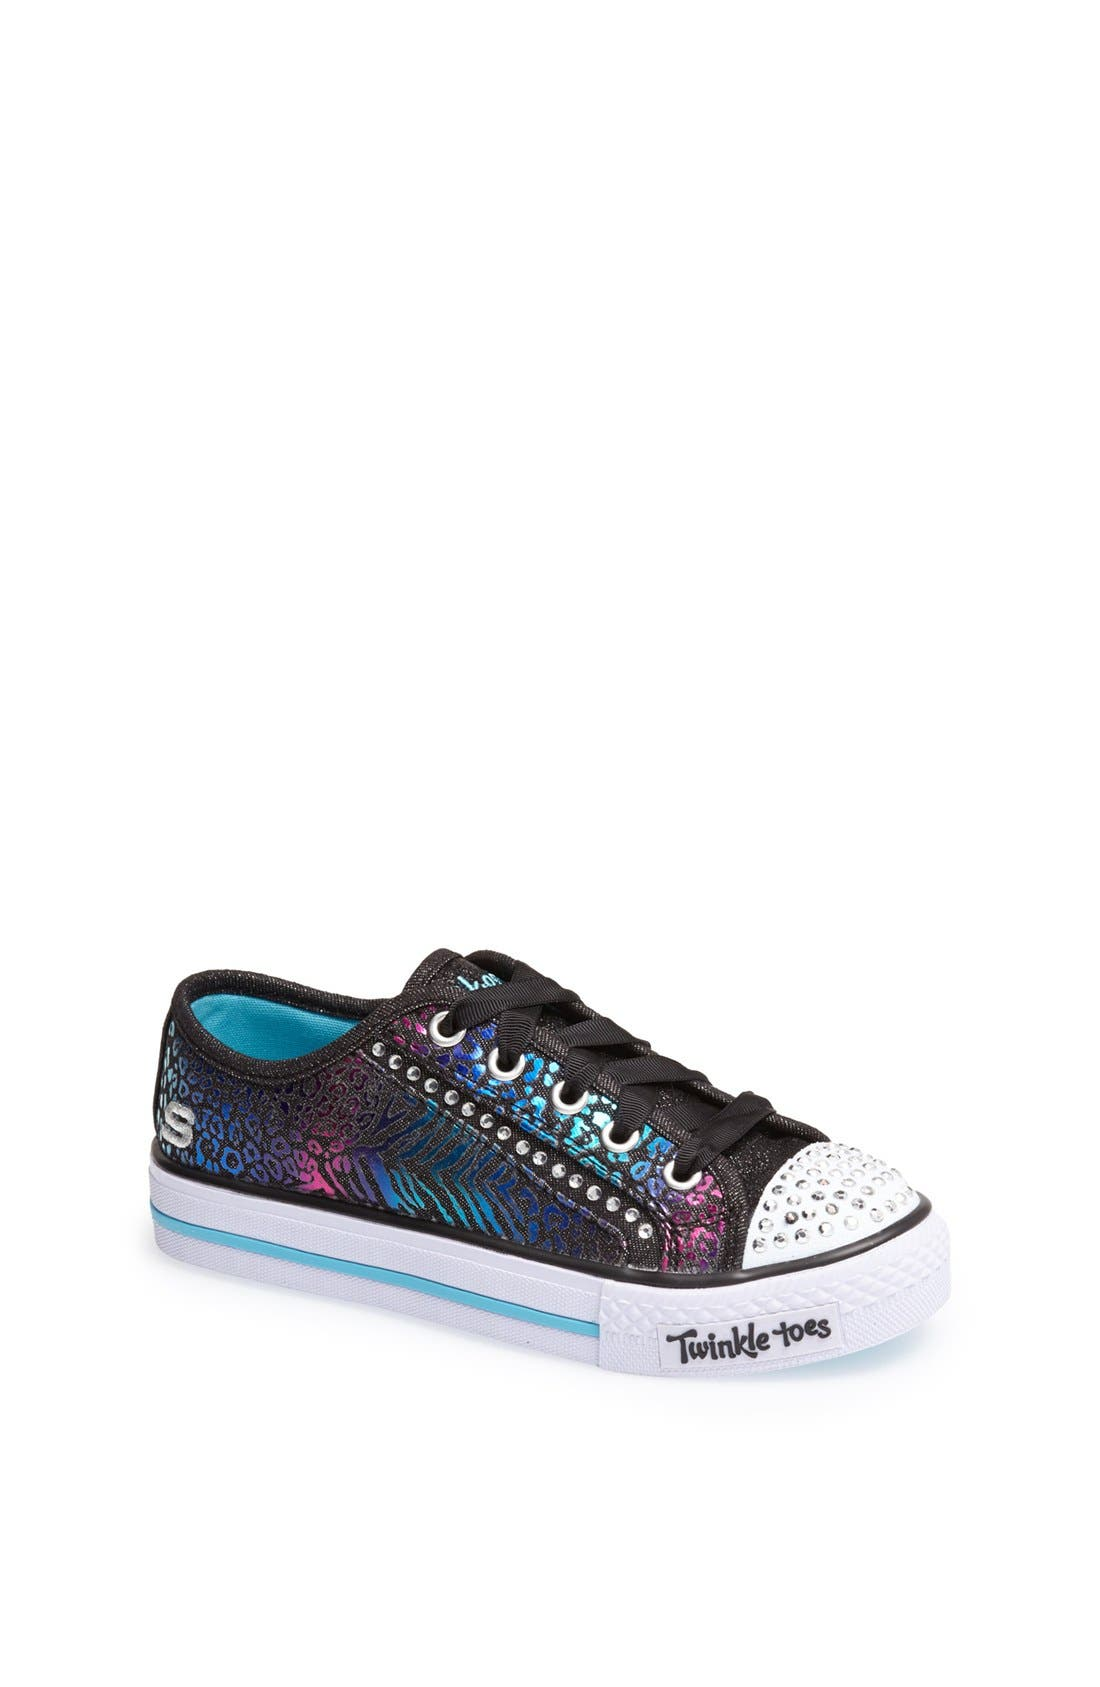 Main Image - SKECHERS 'Shuffles - Gimme Glam' Light Up Sneaker (Toddler, Little Kid & Big Kid)